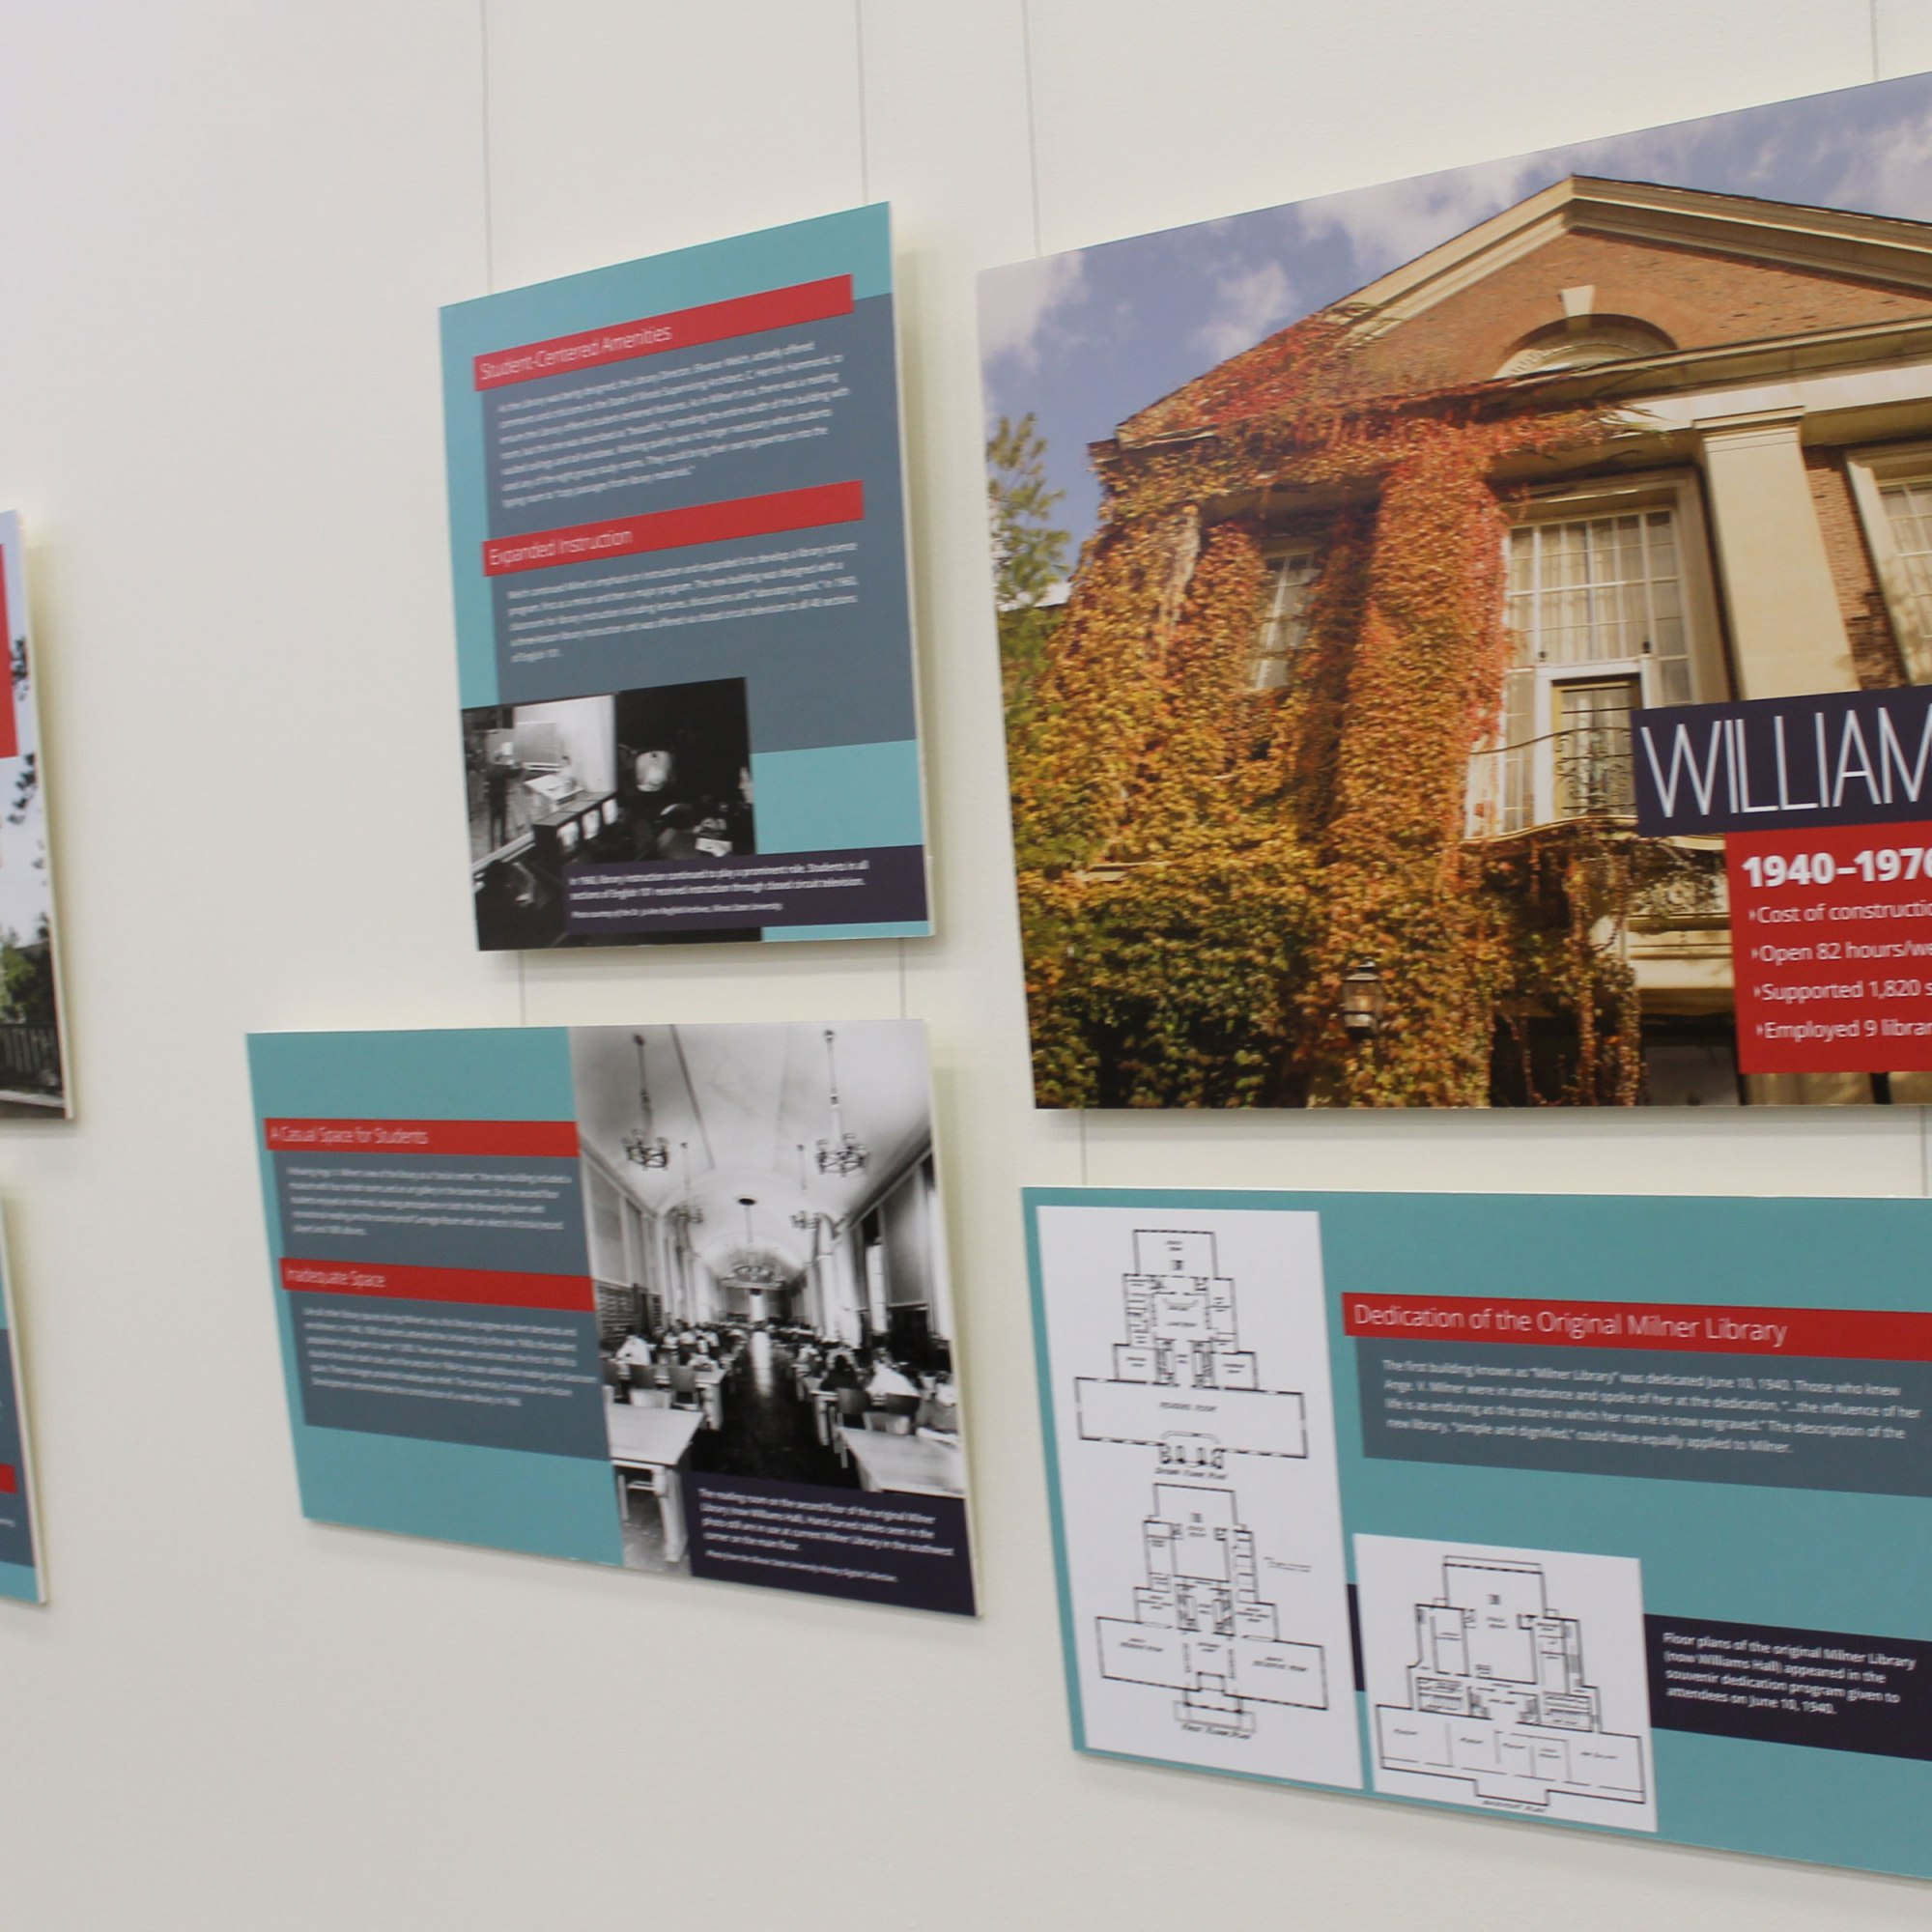 """Photos on a wall, one of the photos says """"Williams Hall"""" Another features blueprints. Other shows historic photos of activities inside the library."""